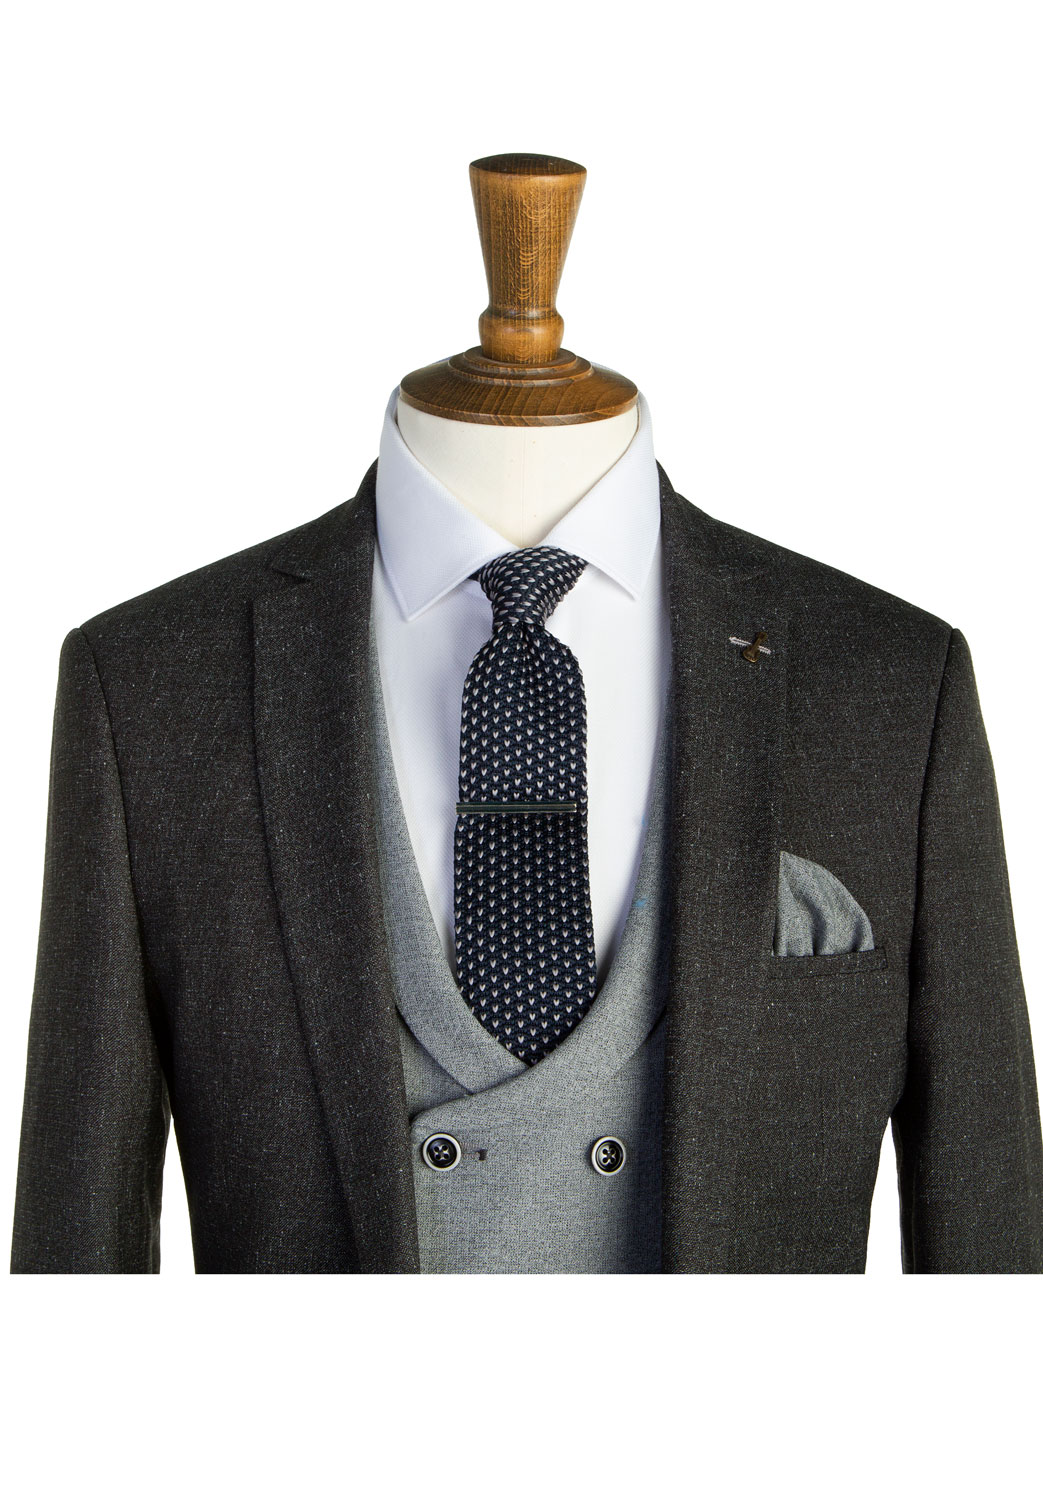 Bentley Charcoal Grey Tweed 3 Piece Suit Tom Murphy S Formal And